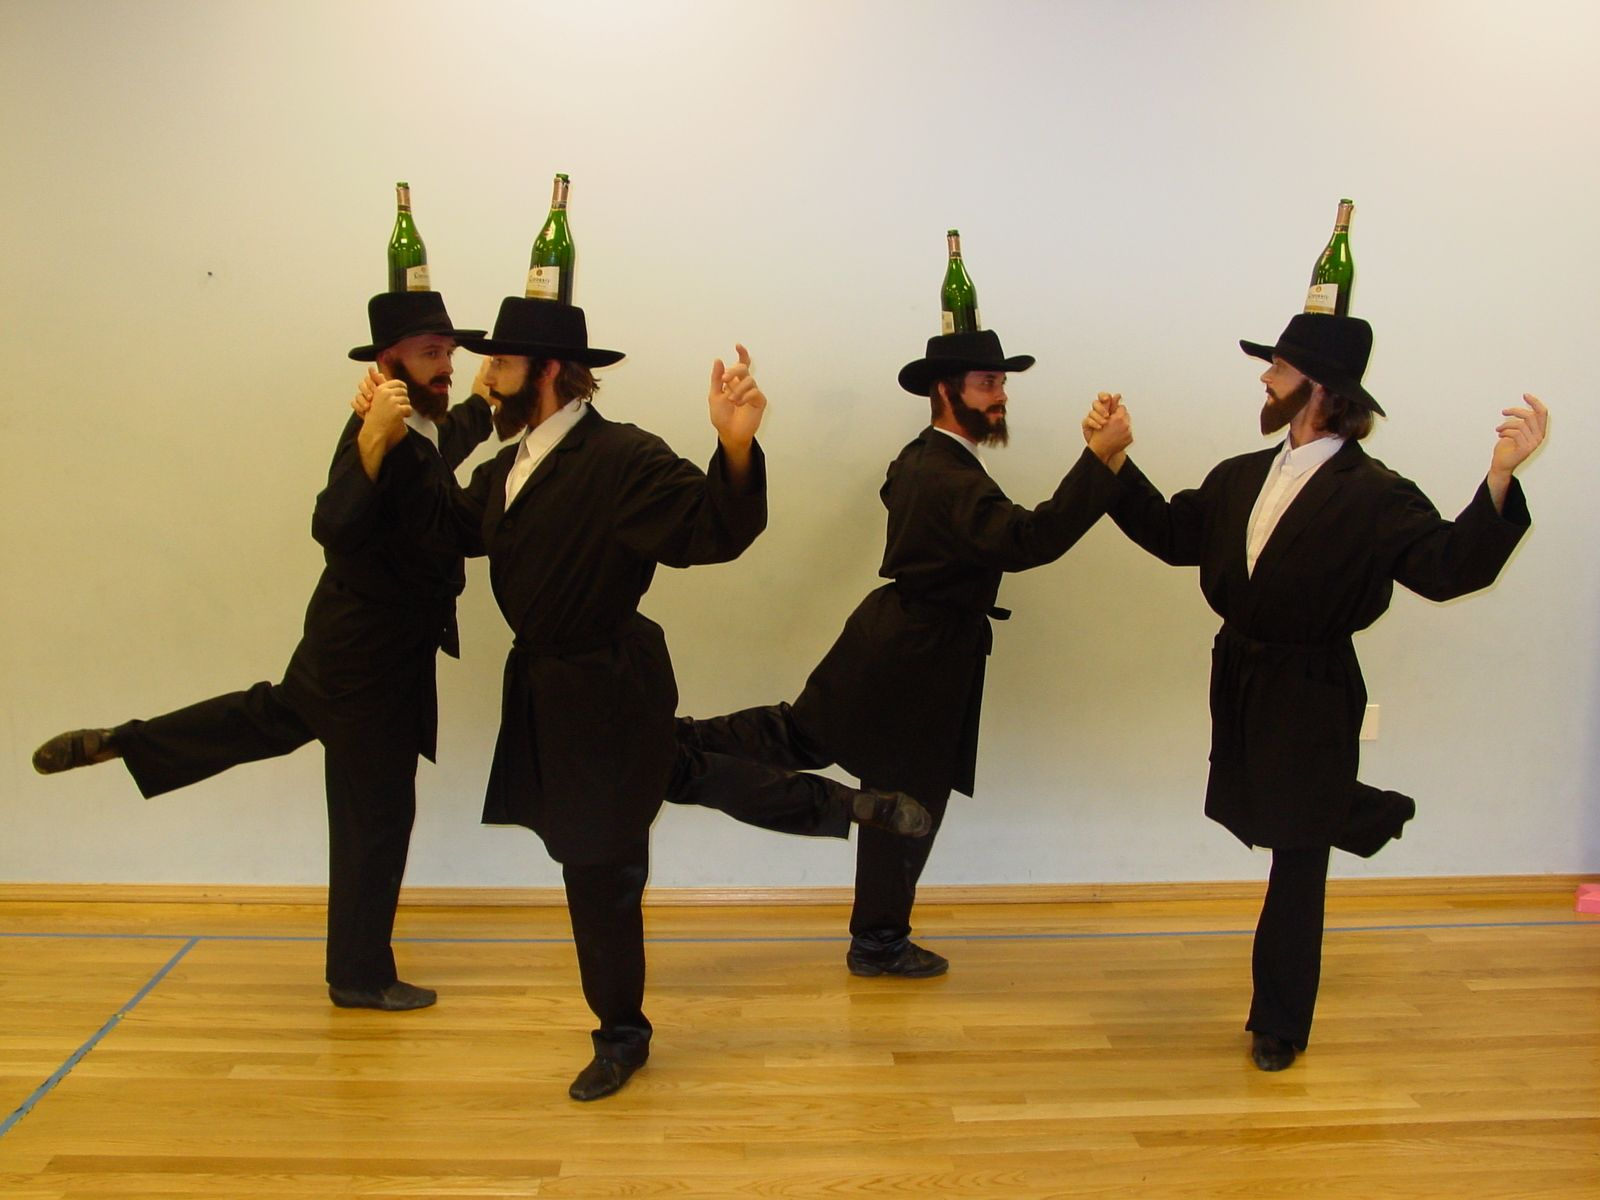 Bottle Dancers Usa From Brooklyn Professional Troupe Of Jewish Male Dancers Hired To Perform Traditional Russian And European Folk Da Folk Dance Dance Dancer